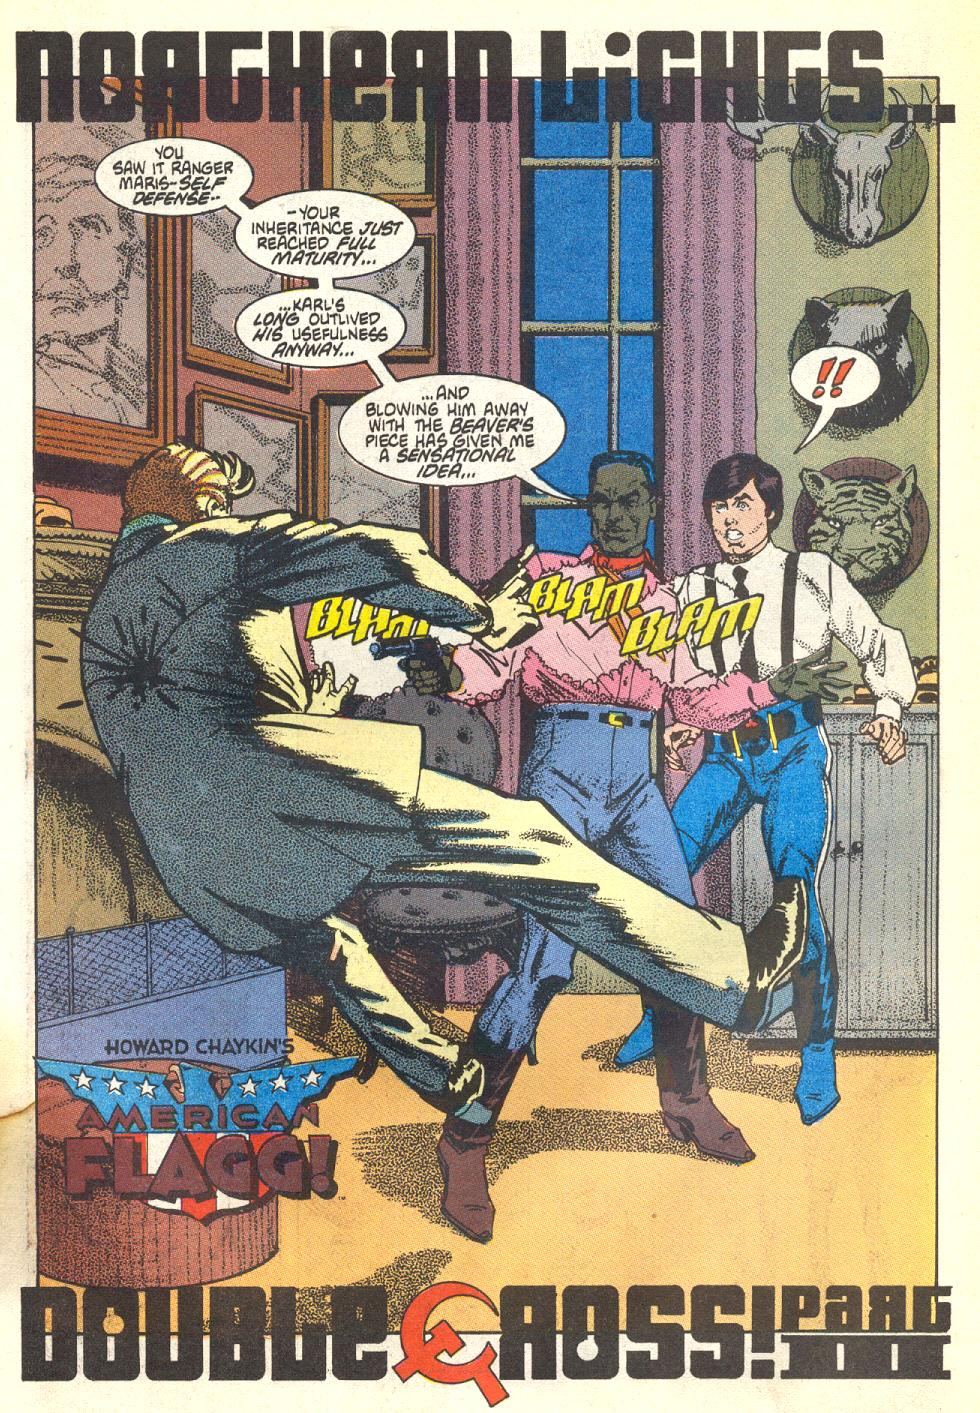 Read online American Flagg! comic -  Issue #17 - 6